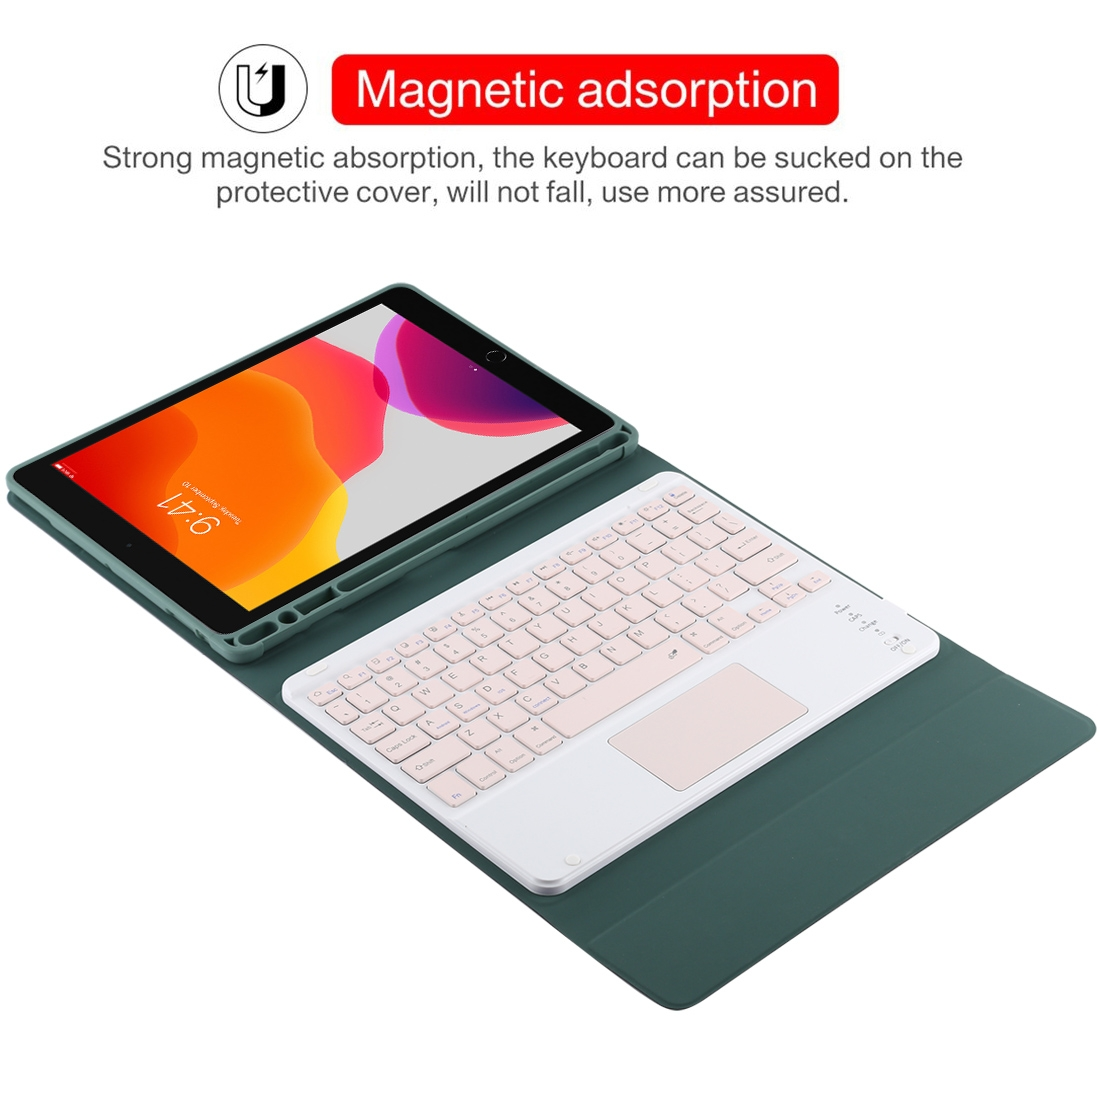 iPad Air Case With Keyboard For iPad 10.2/Air (2019) Leather Case, Touchpad & Bluetooth (Dark Green)